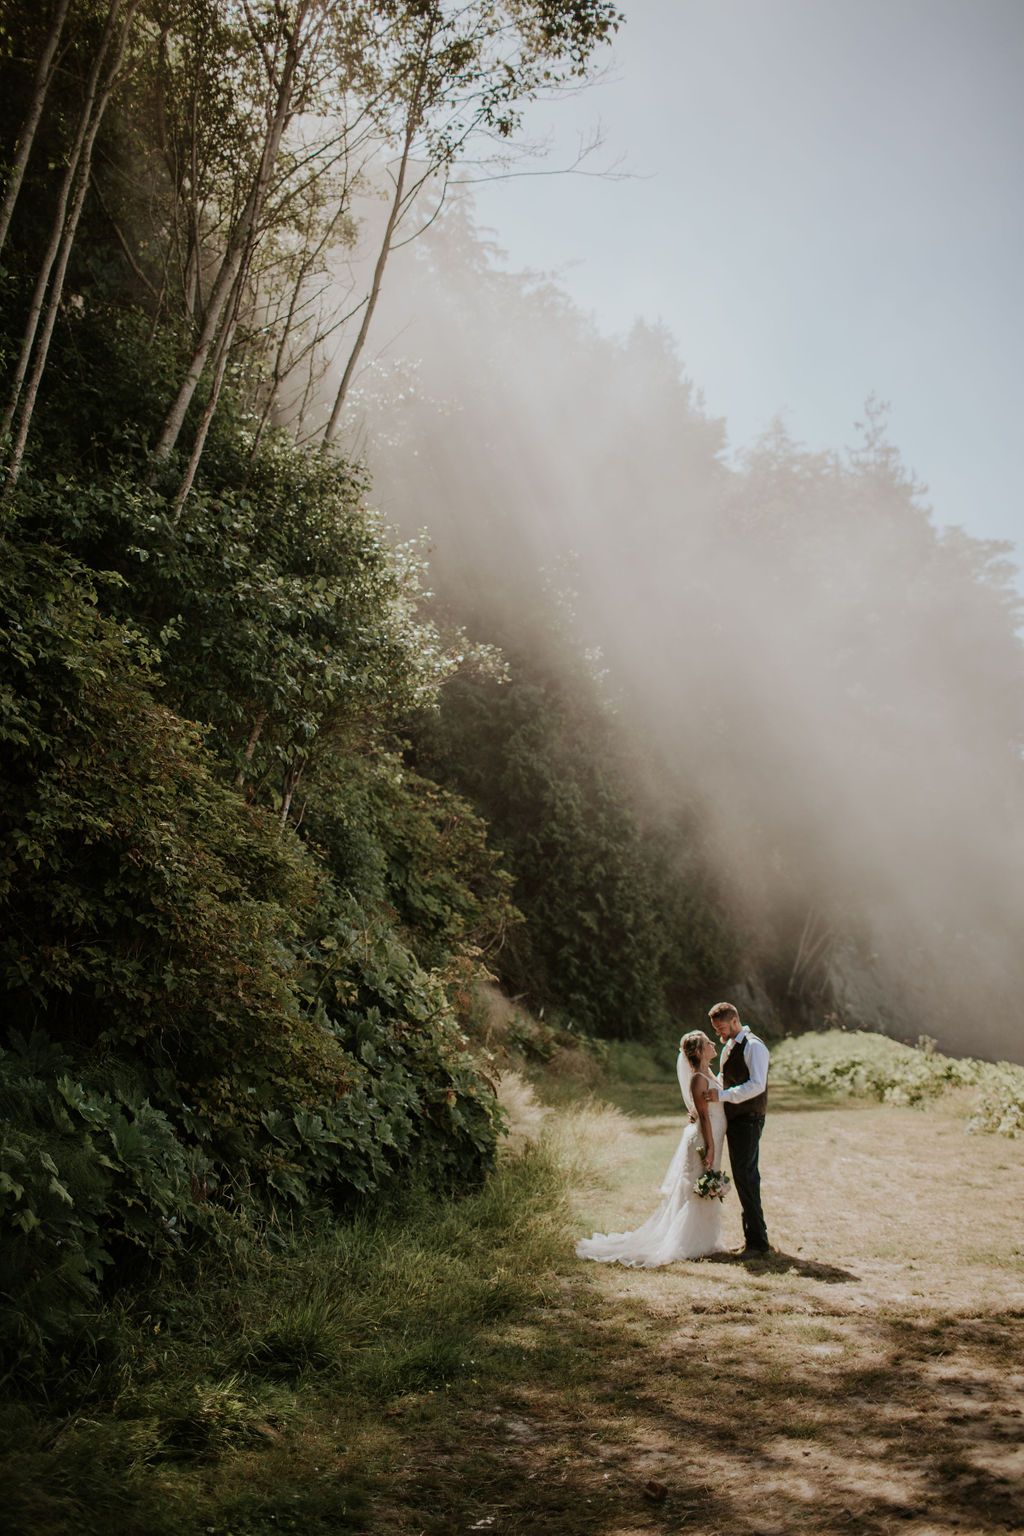 Port-Angeles-Wedding-Photographer-pnw-Whiskey-Creek-Beach-NW-Washington-couples-kayladawnphoto-kayla-dawn-photography-olympic-peninsula-hurricane-ridge-9.jpg